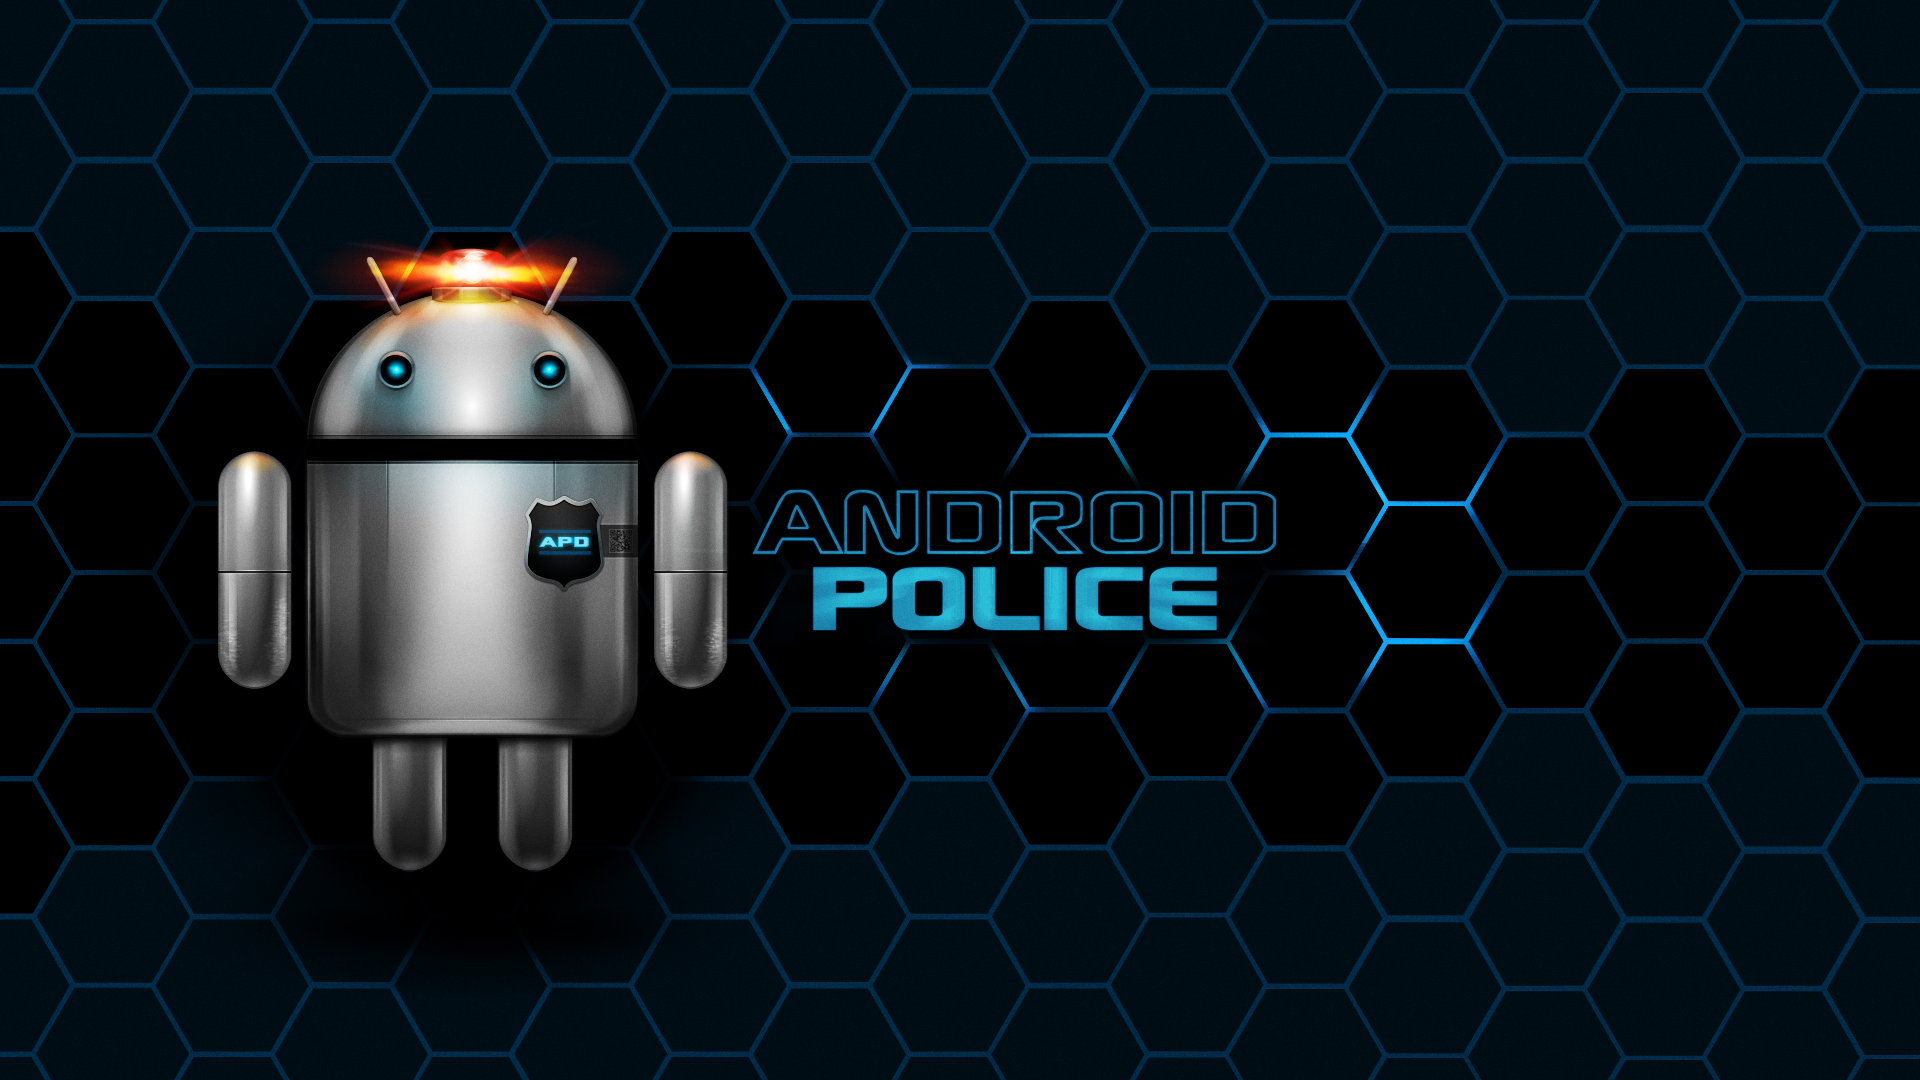 download] here are the top 2 winning gorgeous android police